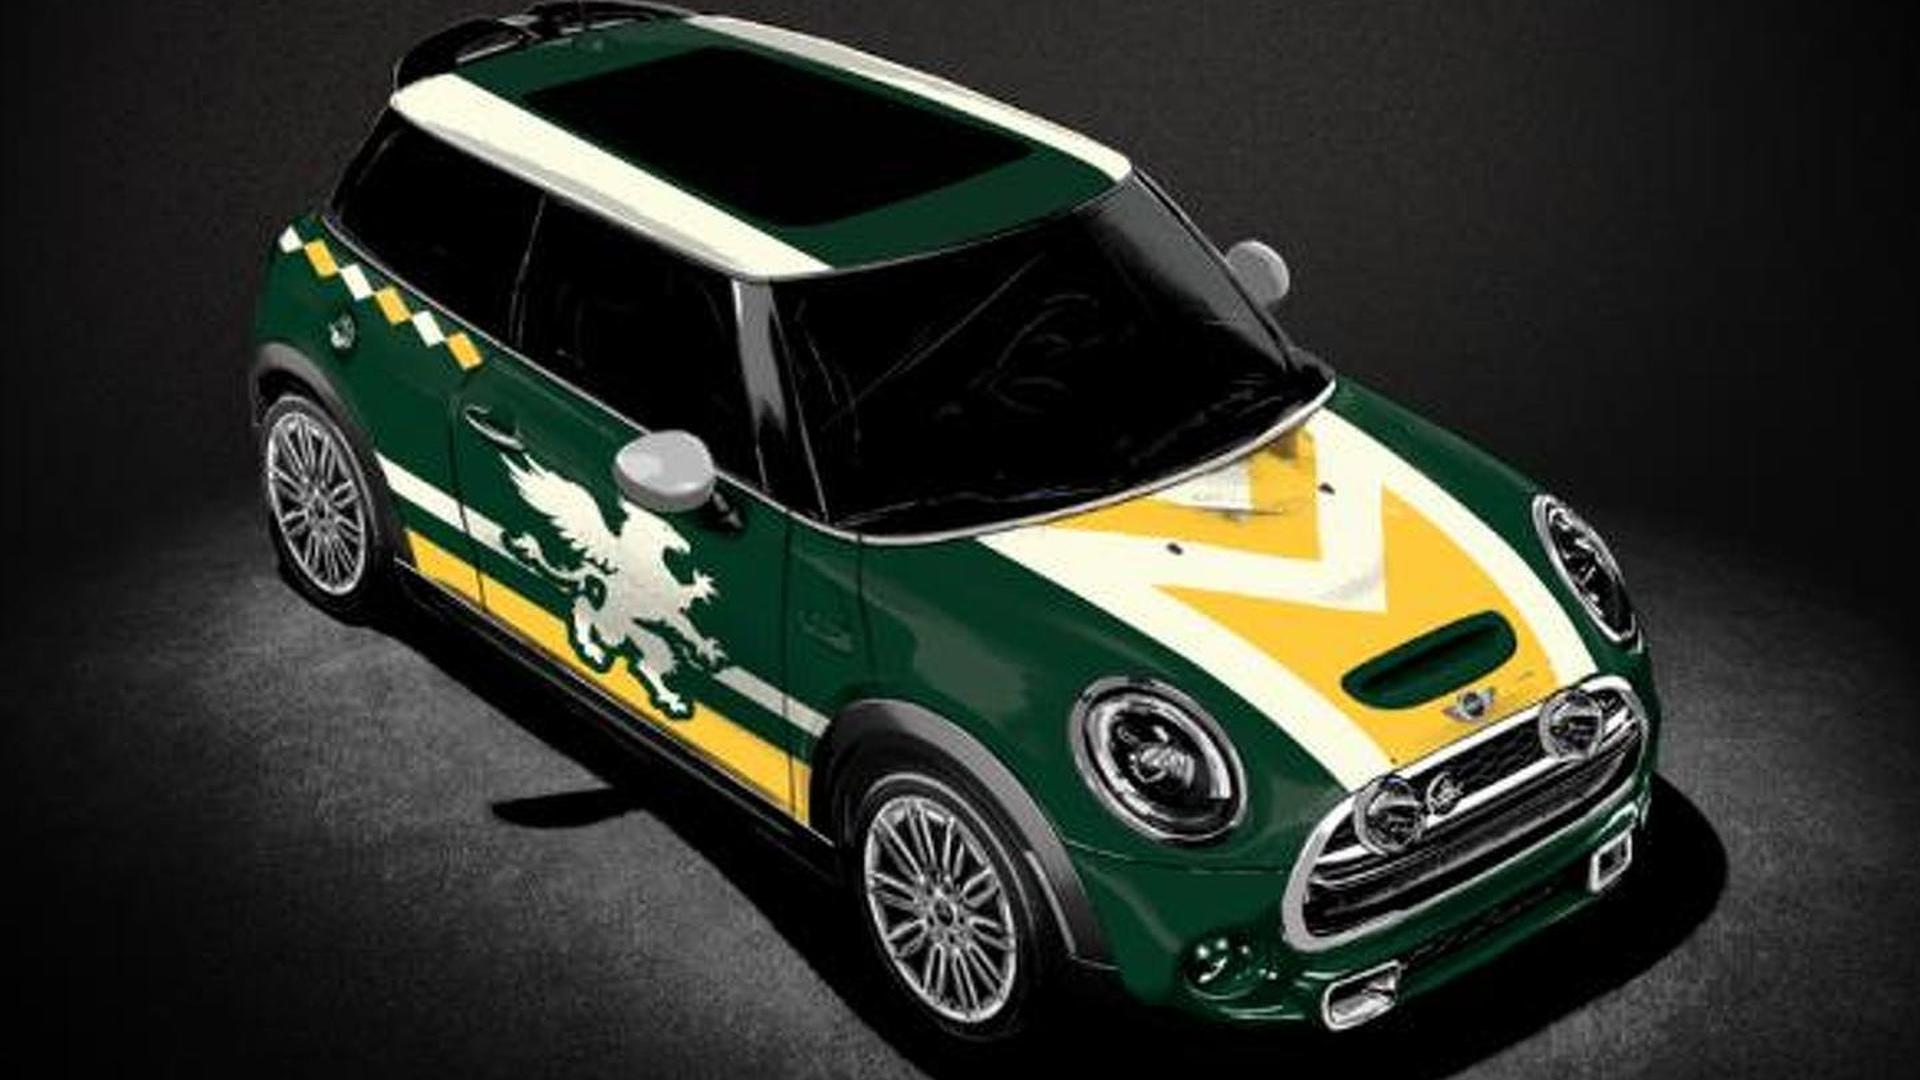 MINI asks fans to select which special edition Cooper to build